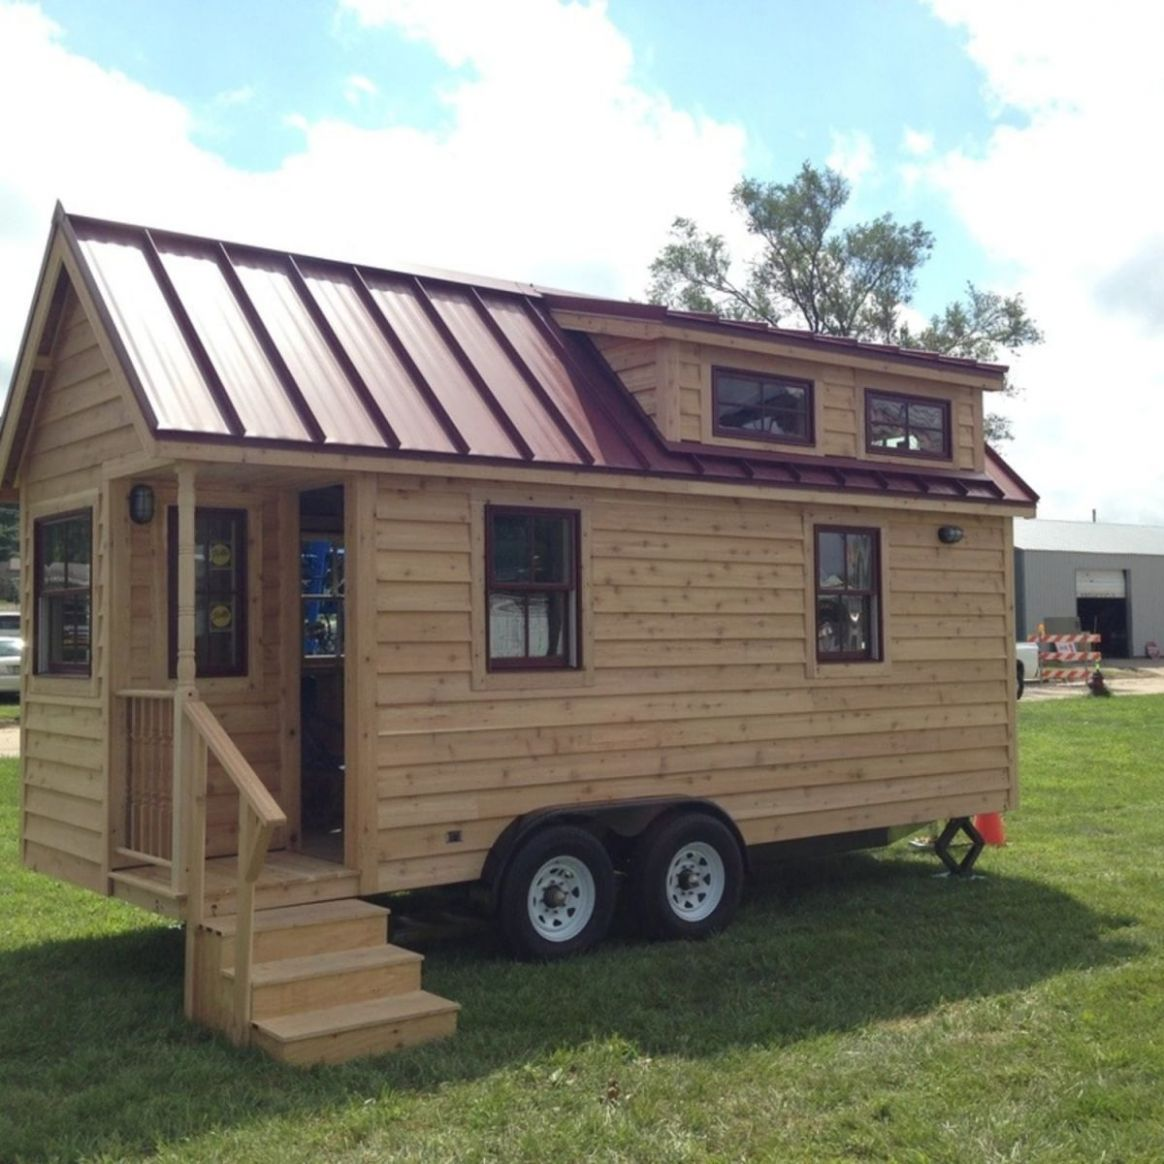 Rick Walkup - Tiny House for Sale in Omaha, Nebraska - Tiny House Listings - tiny house omaha